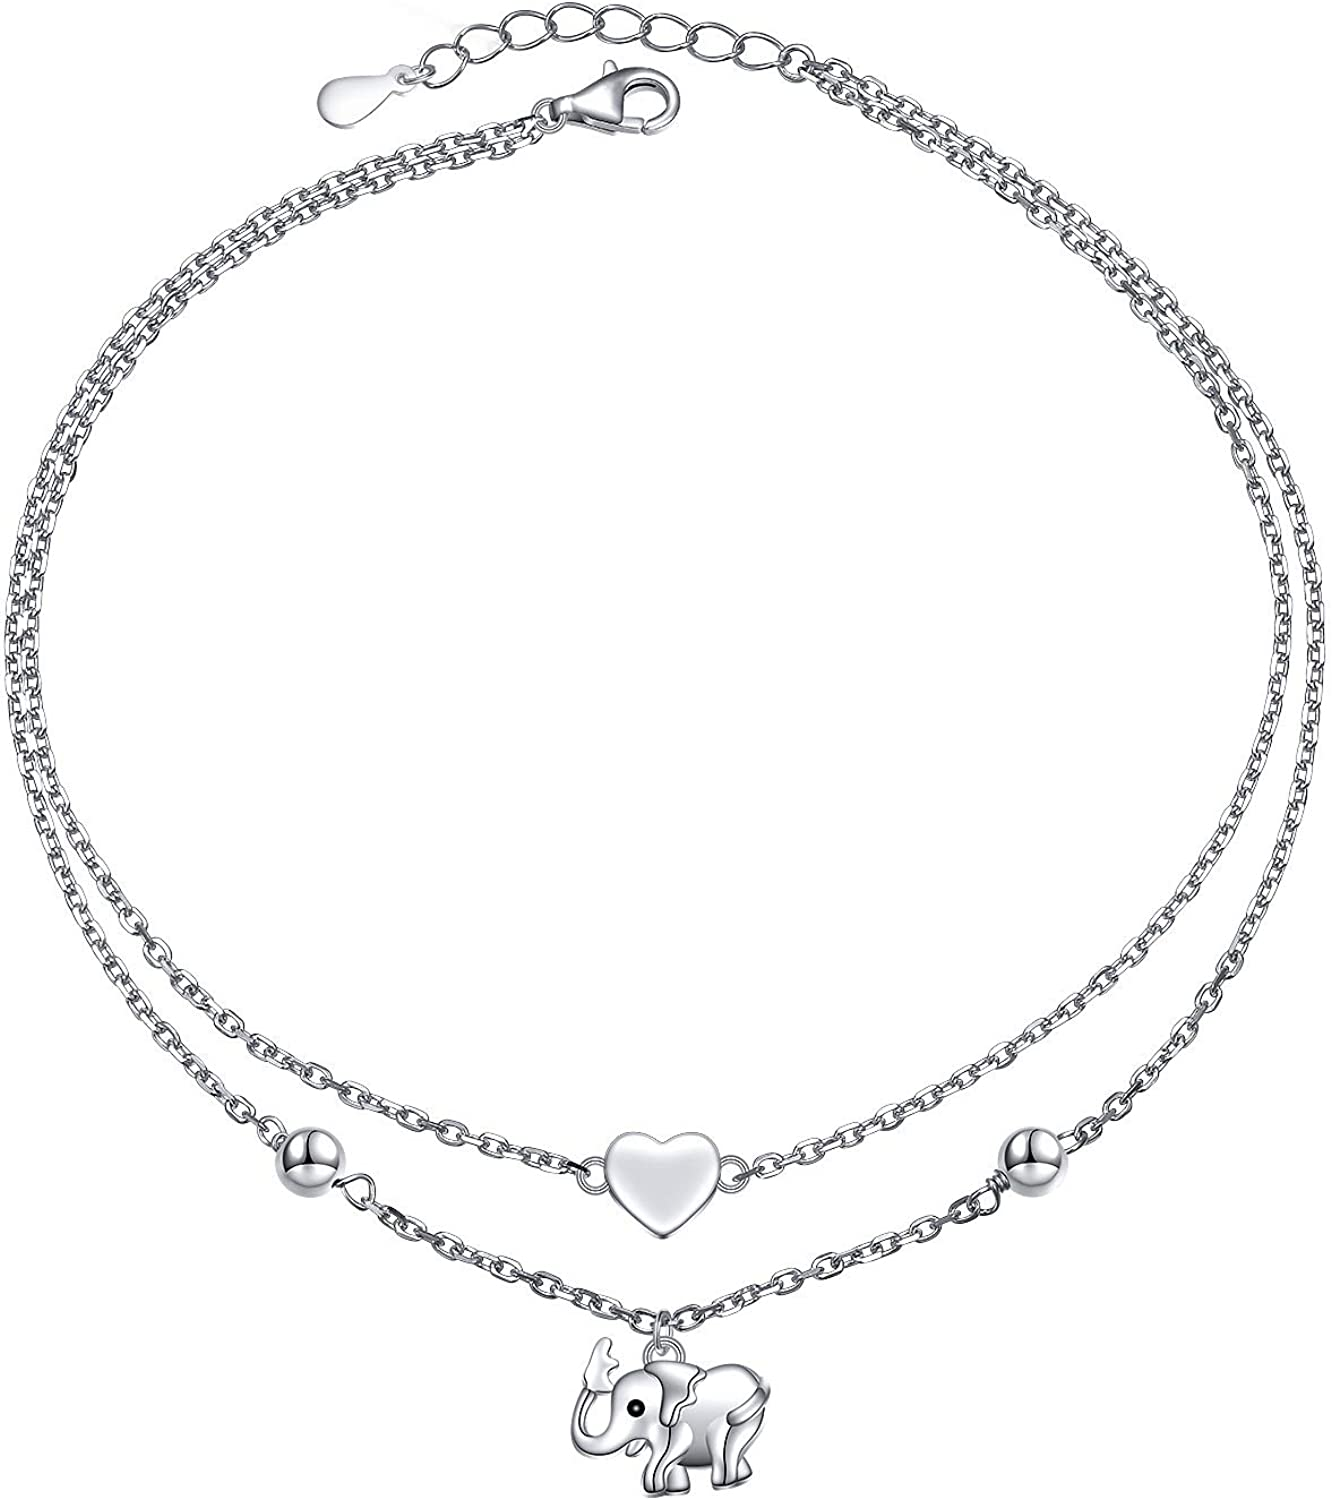 bridesmaid anklets personalized gifting foot bracelet light weight anklet nank220 10.5 925 solid sterling silver gorgeous ankle bracelet